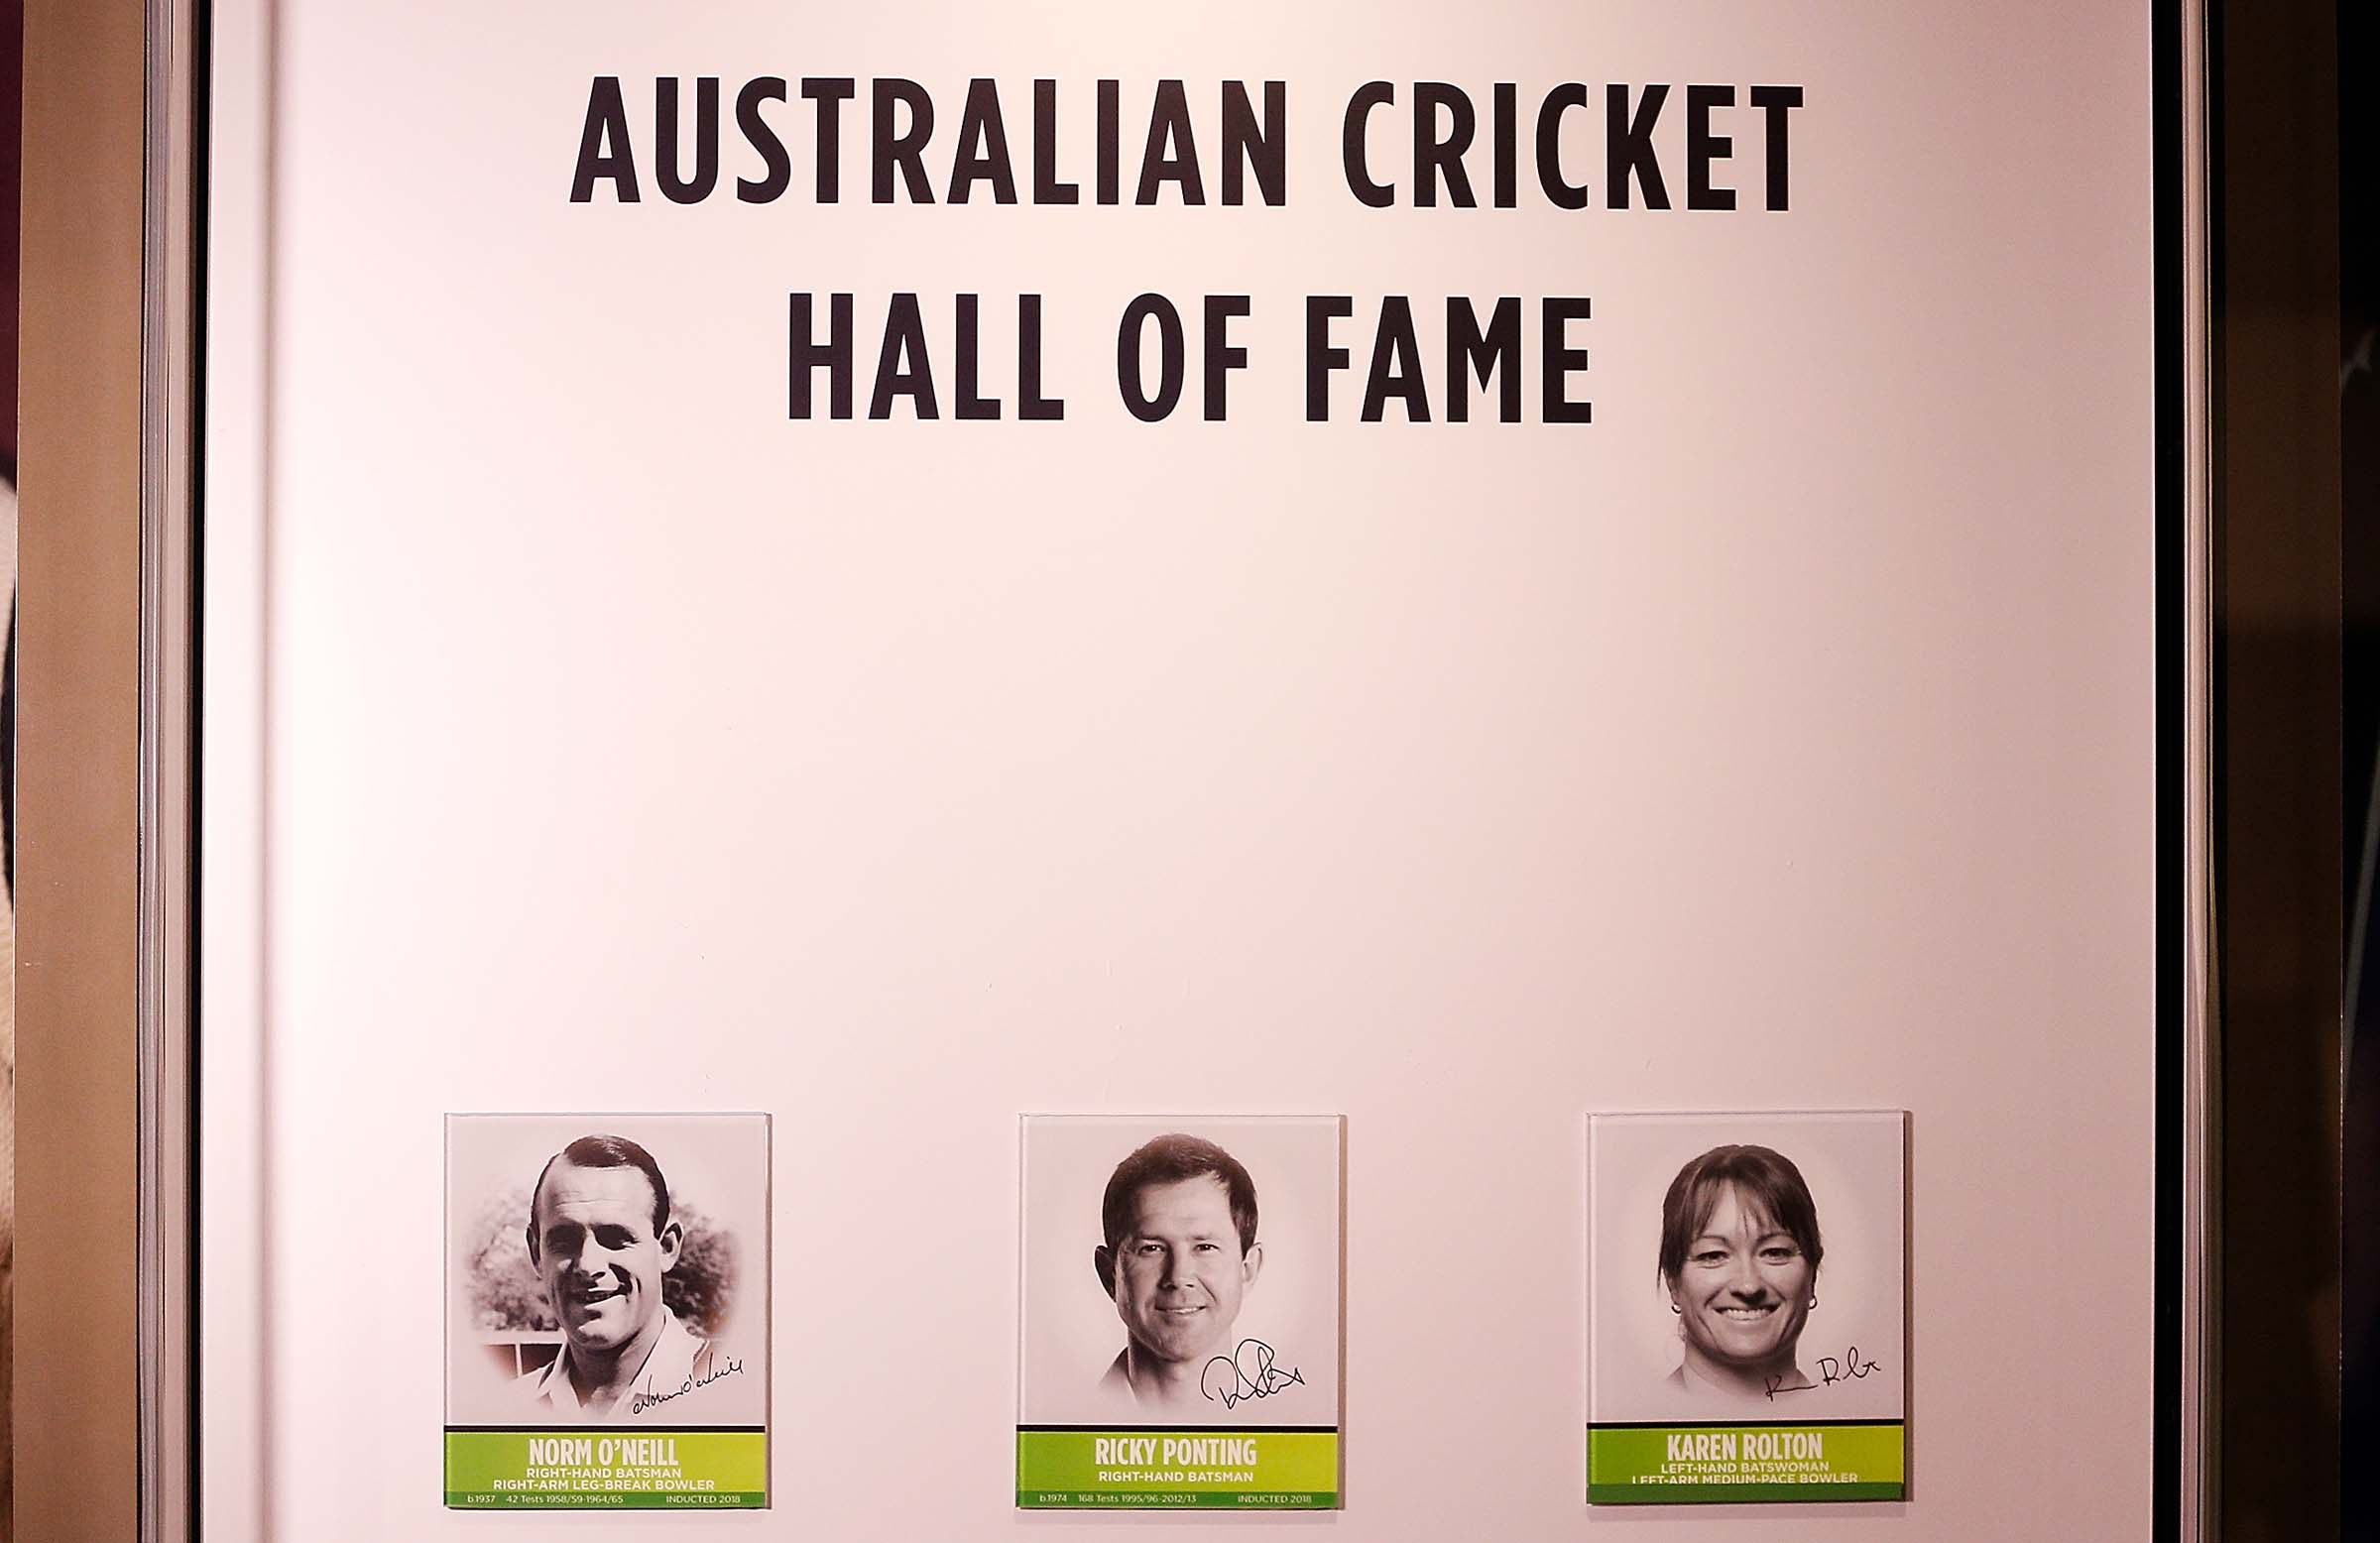 With Norm O'Neill and Ricky Ponting in the Australian Cricket Hall of Fame // Getty